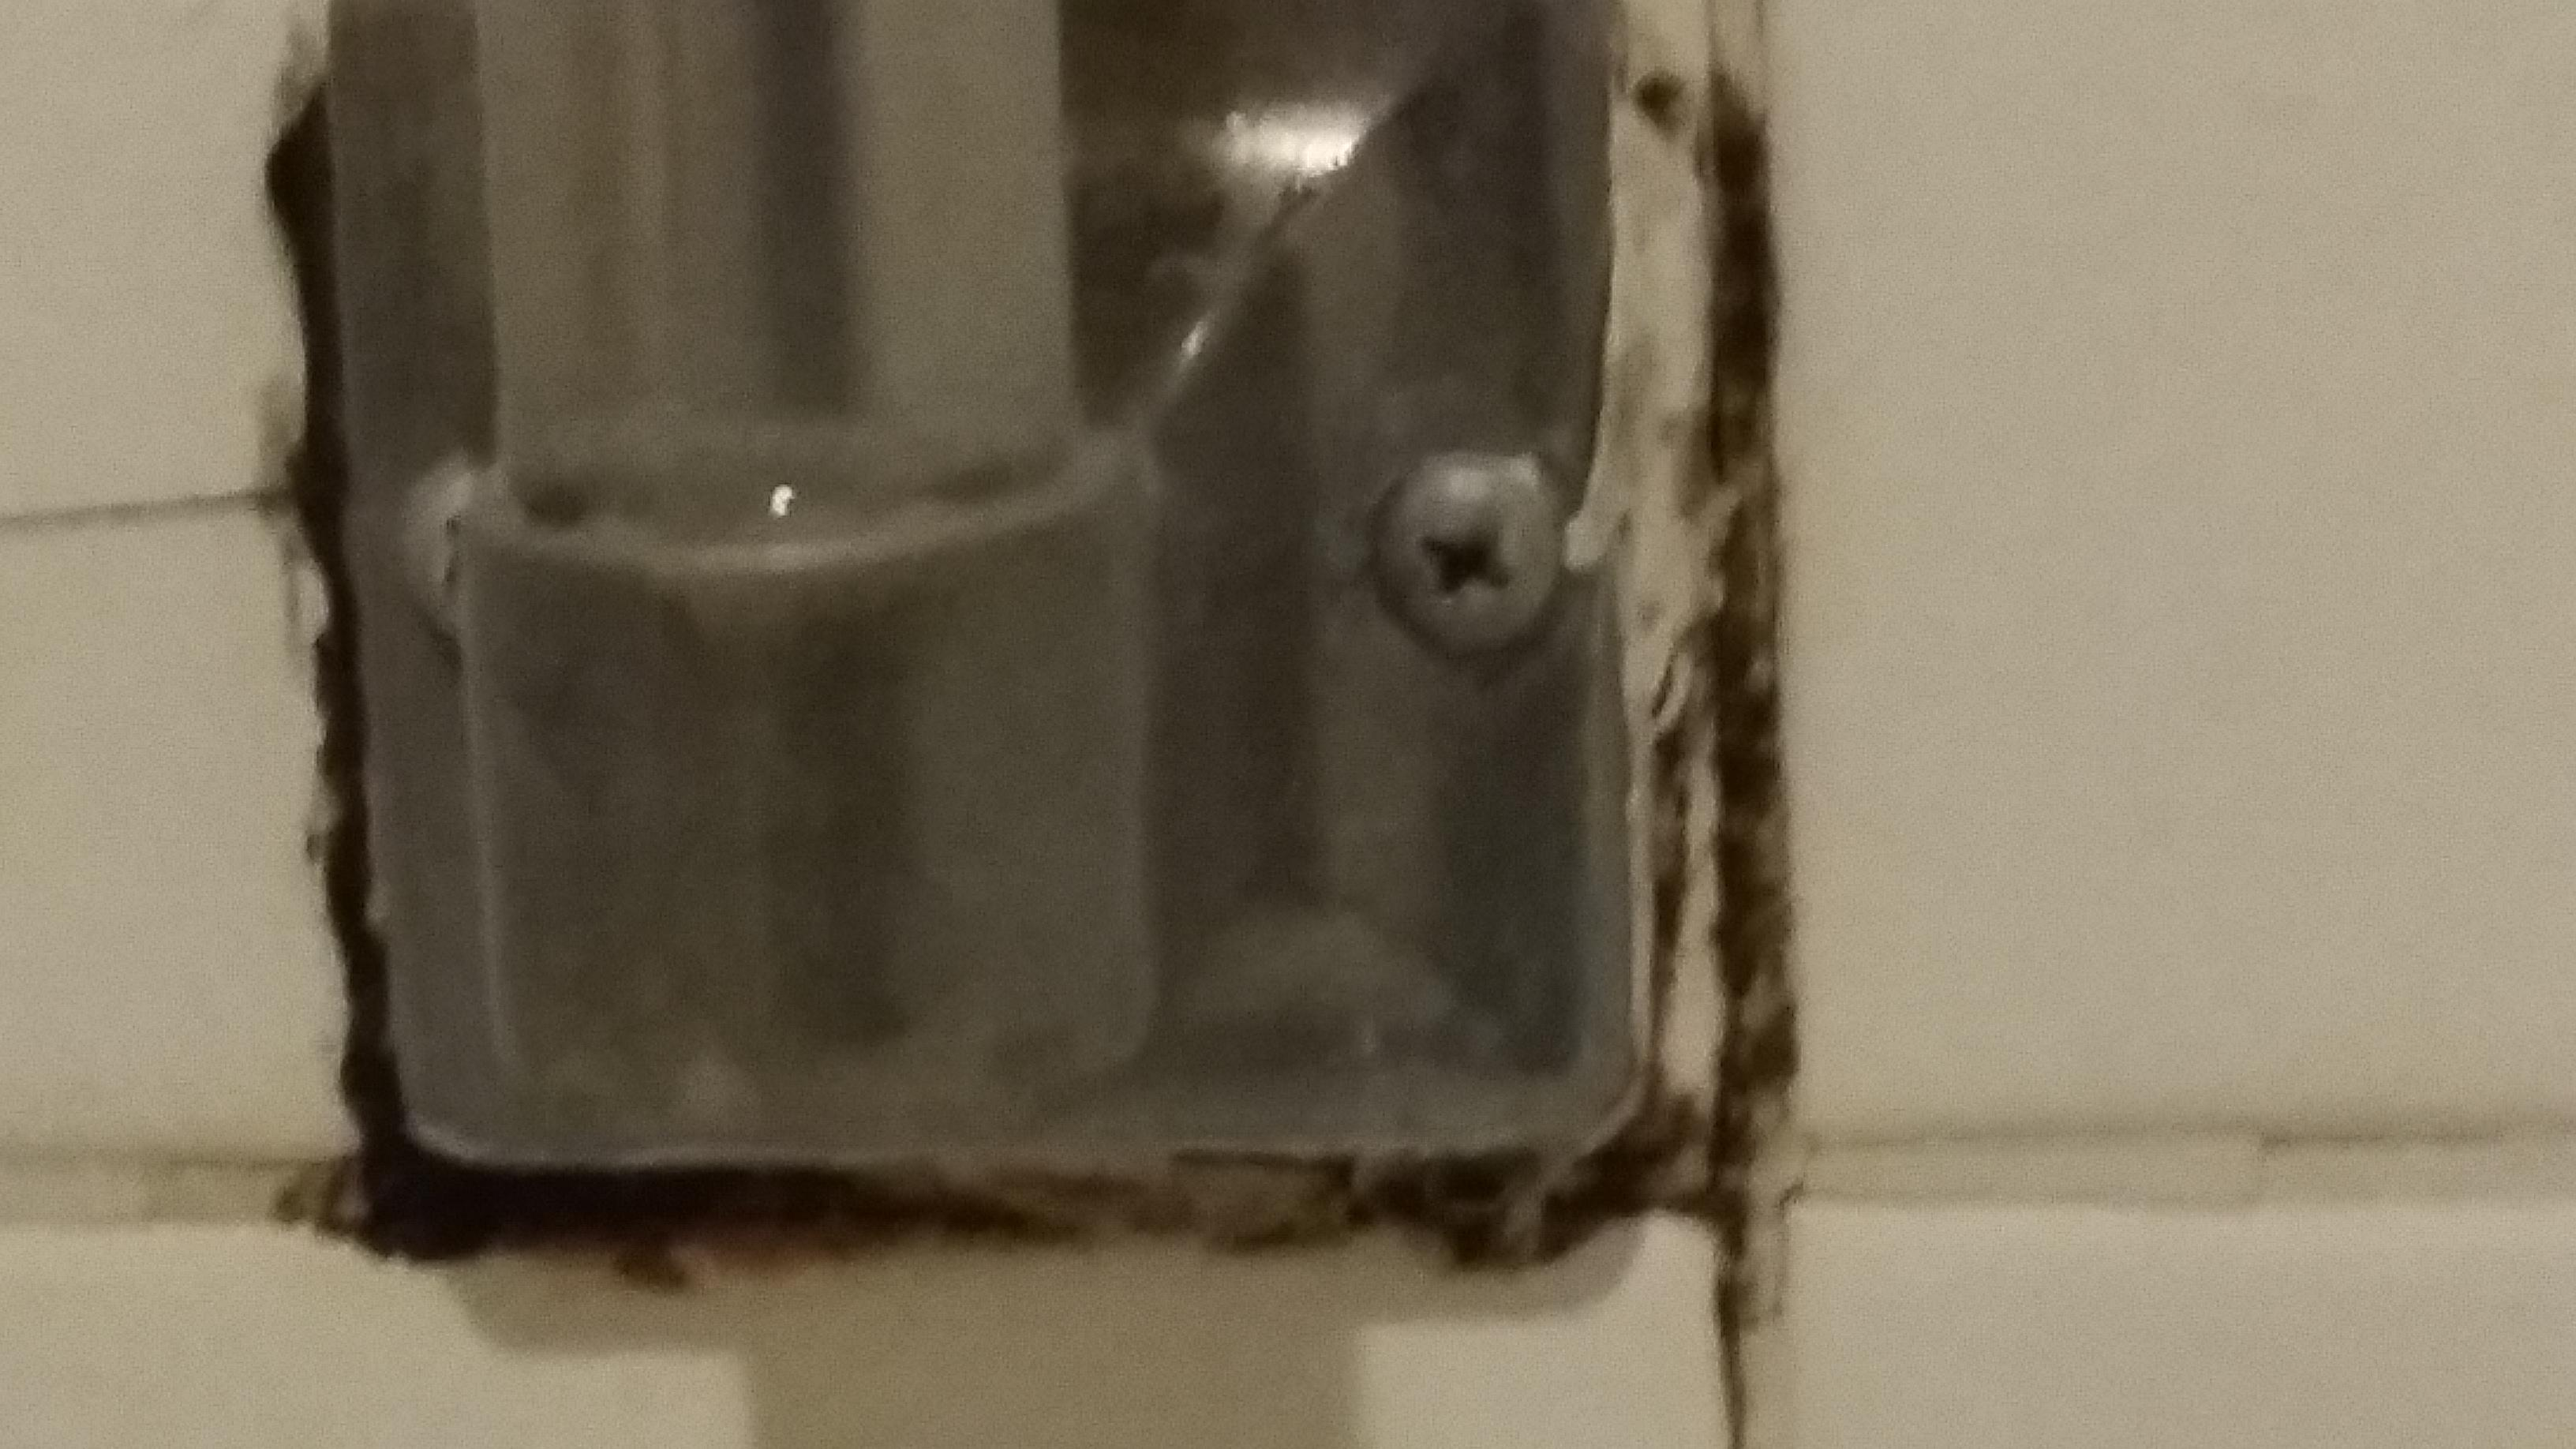 Mold under the soap dish in the tub.